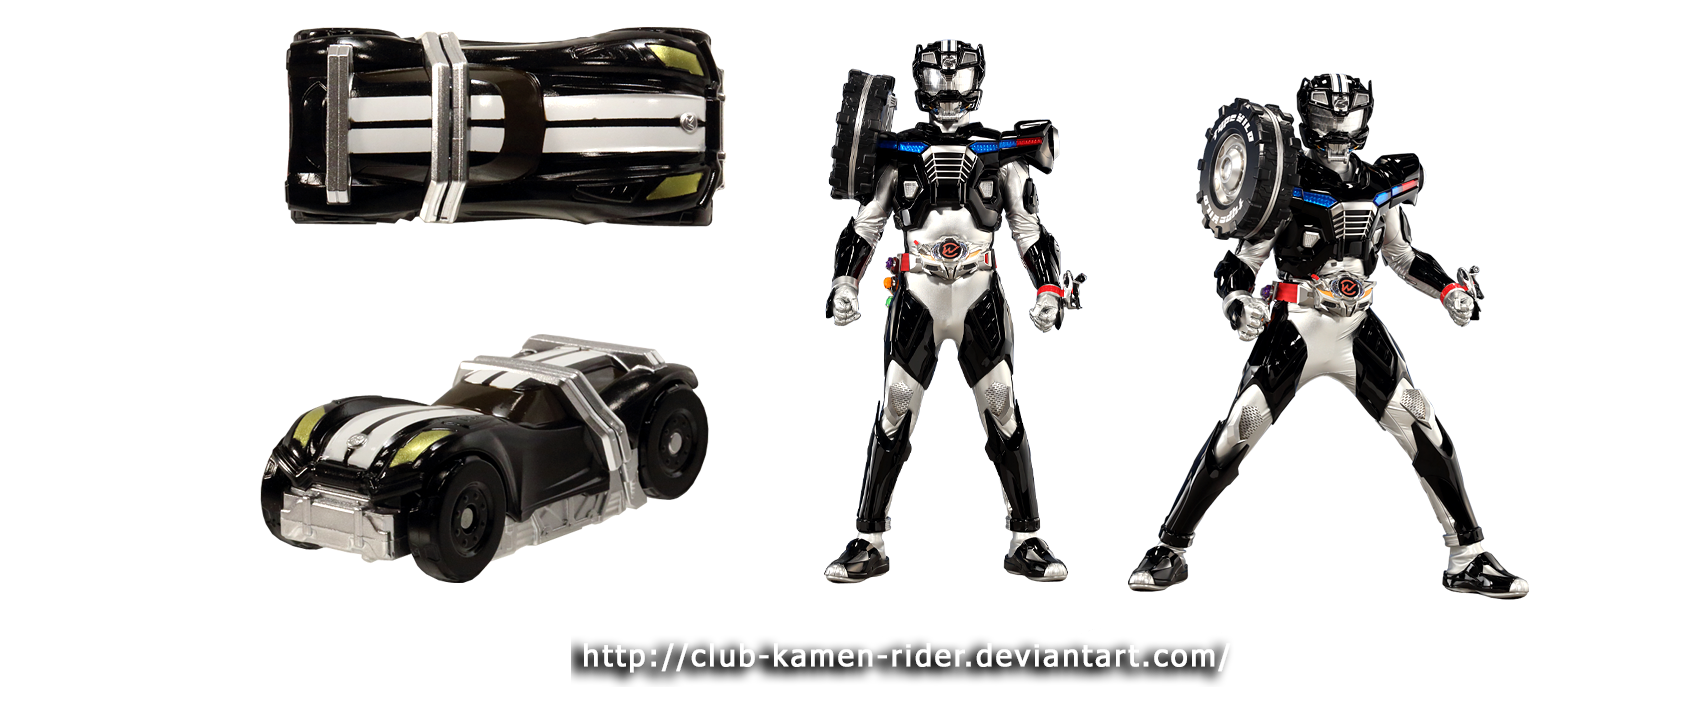 Club kamen rider on deviantart auto design tech for Designhotel kamen